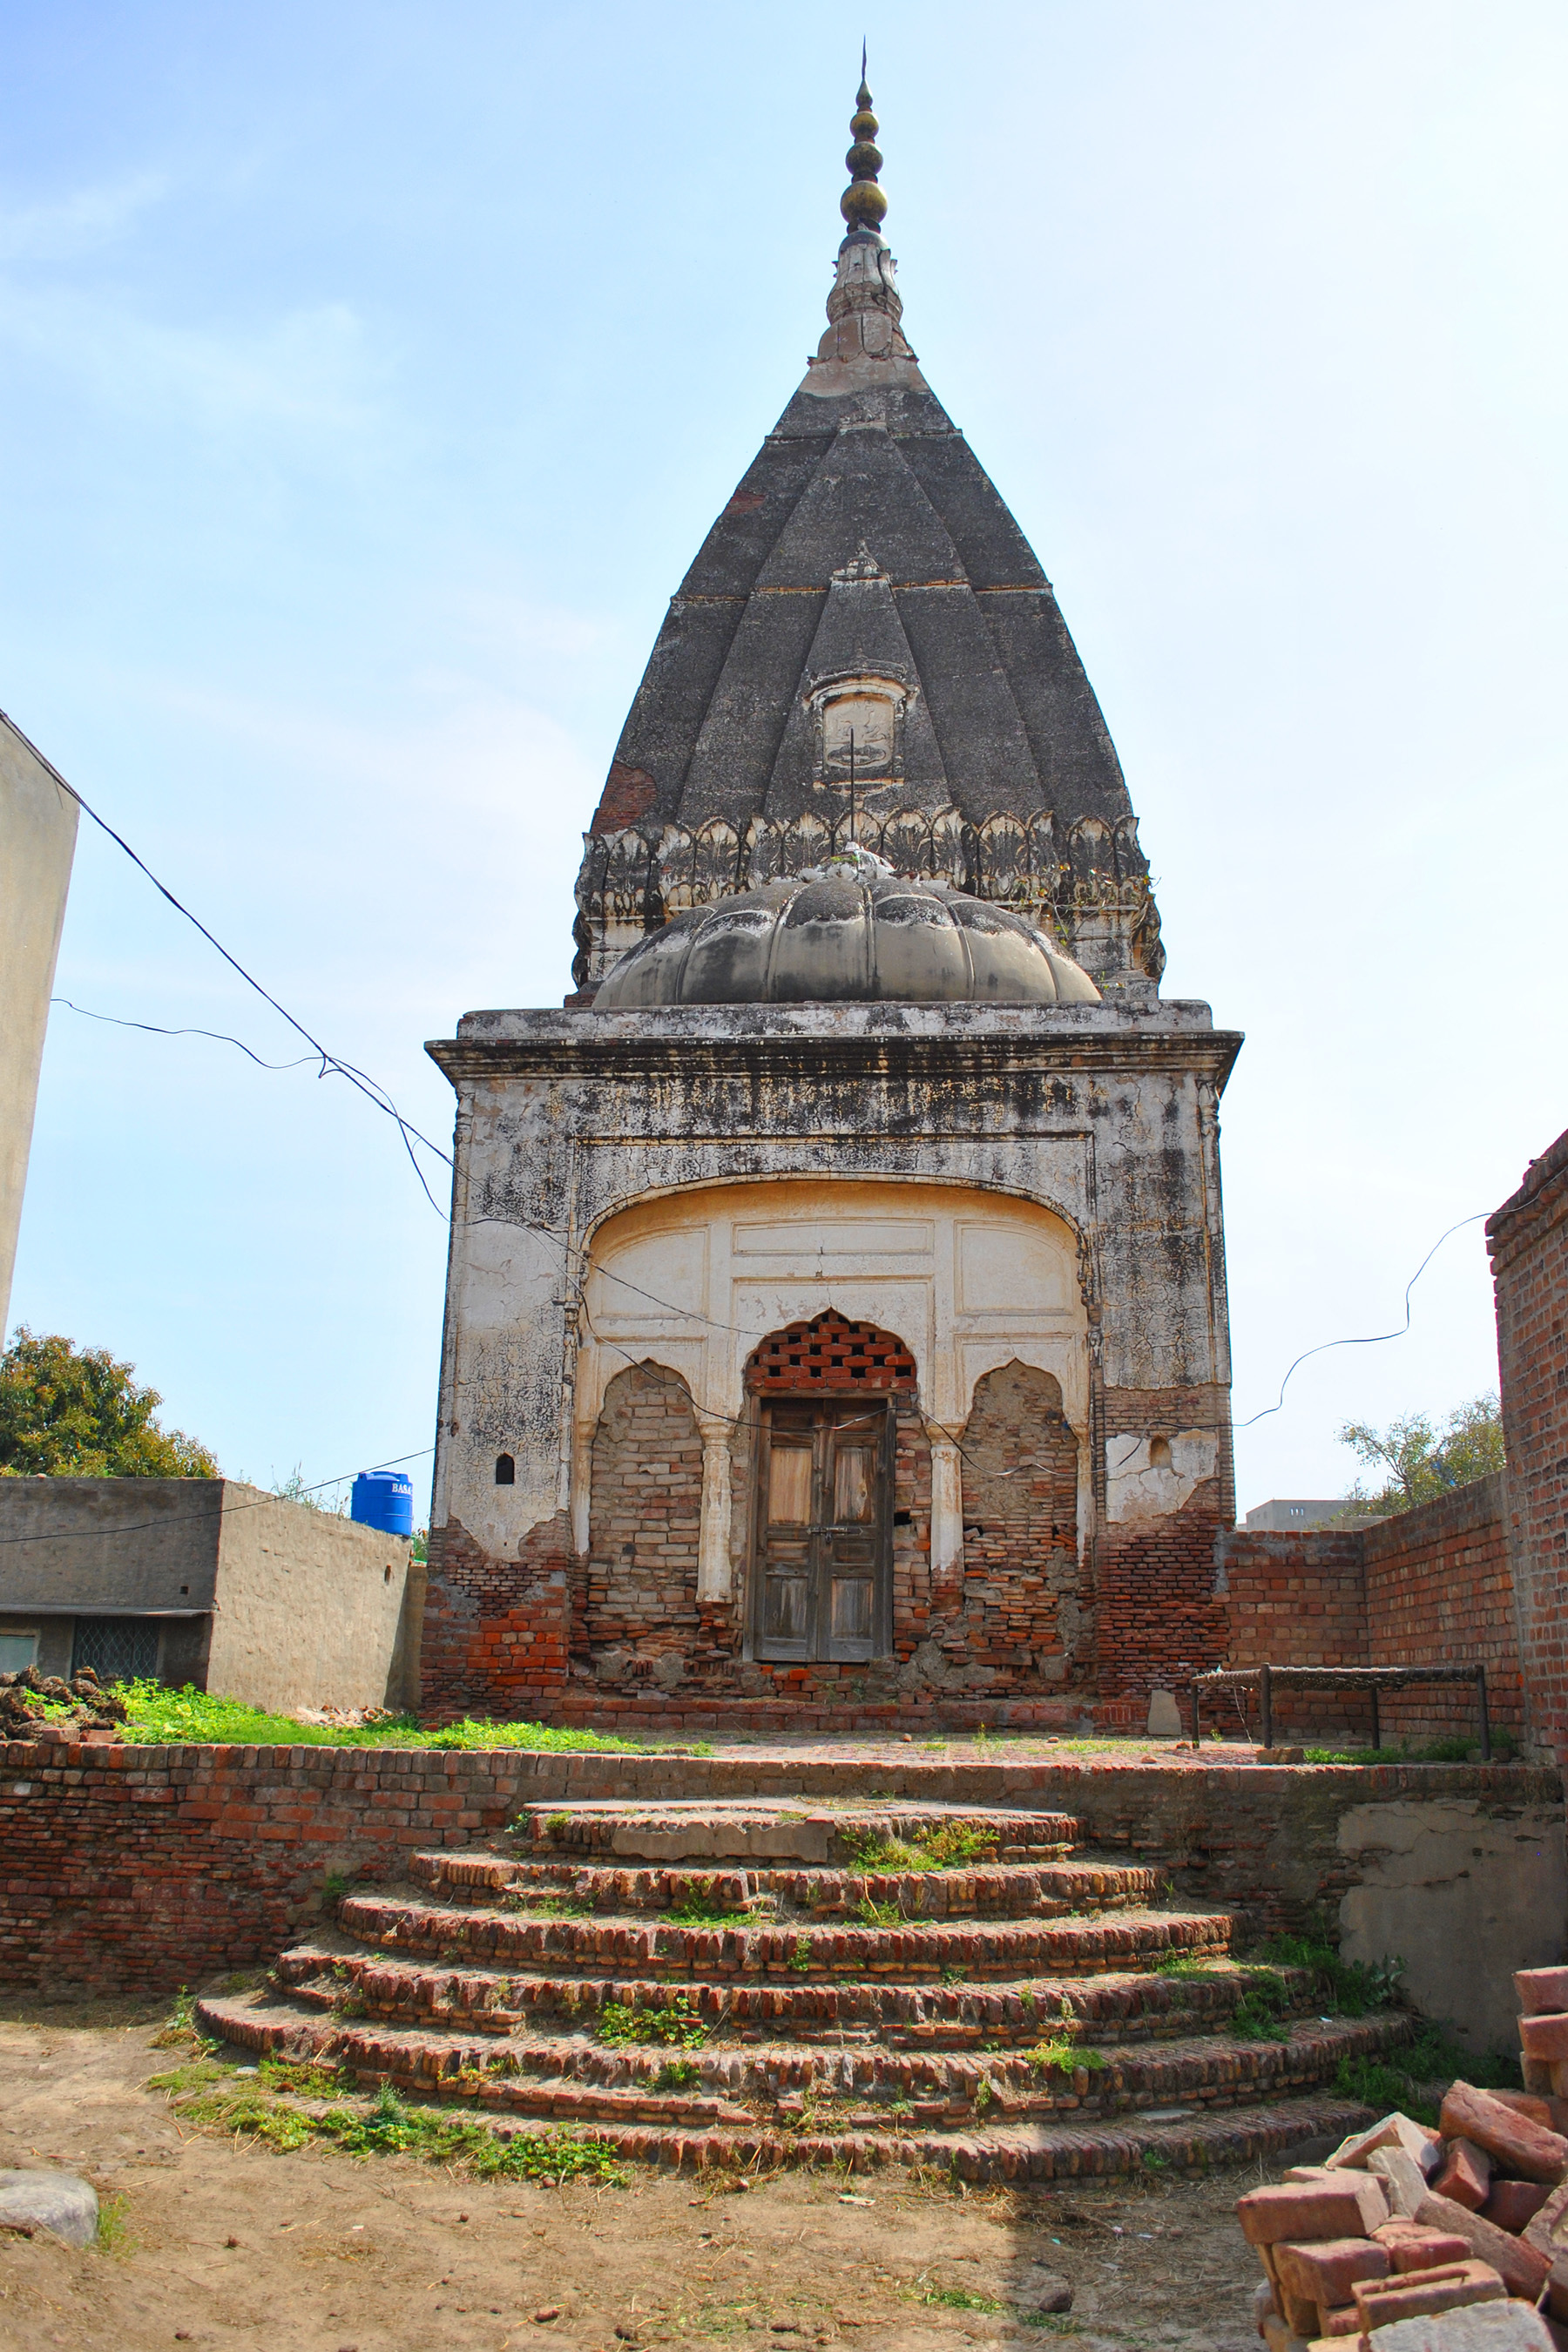 Shiva Temple in all its eroded glory.